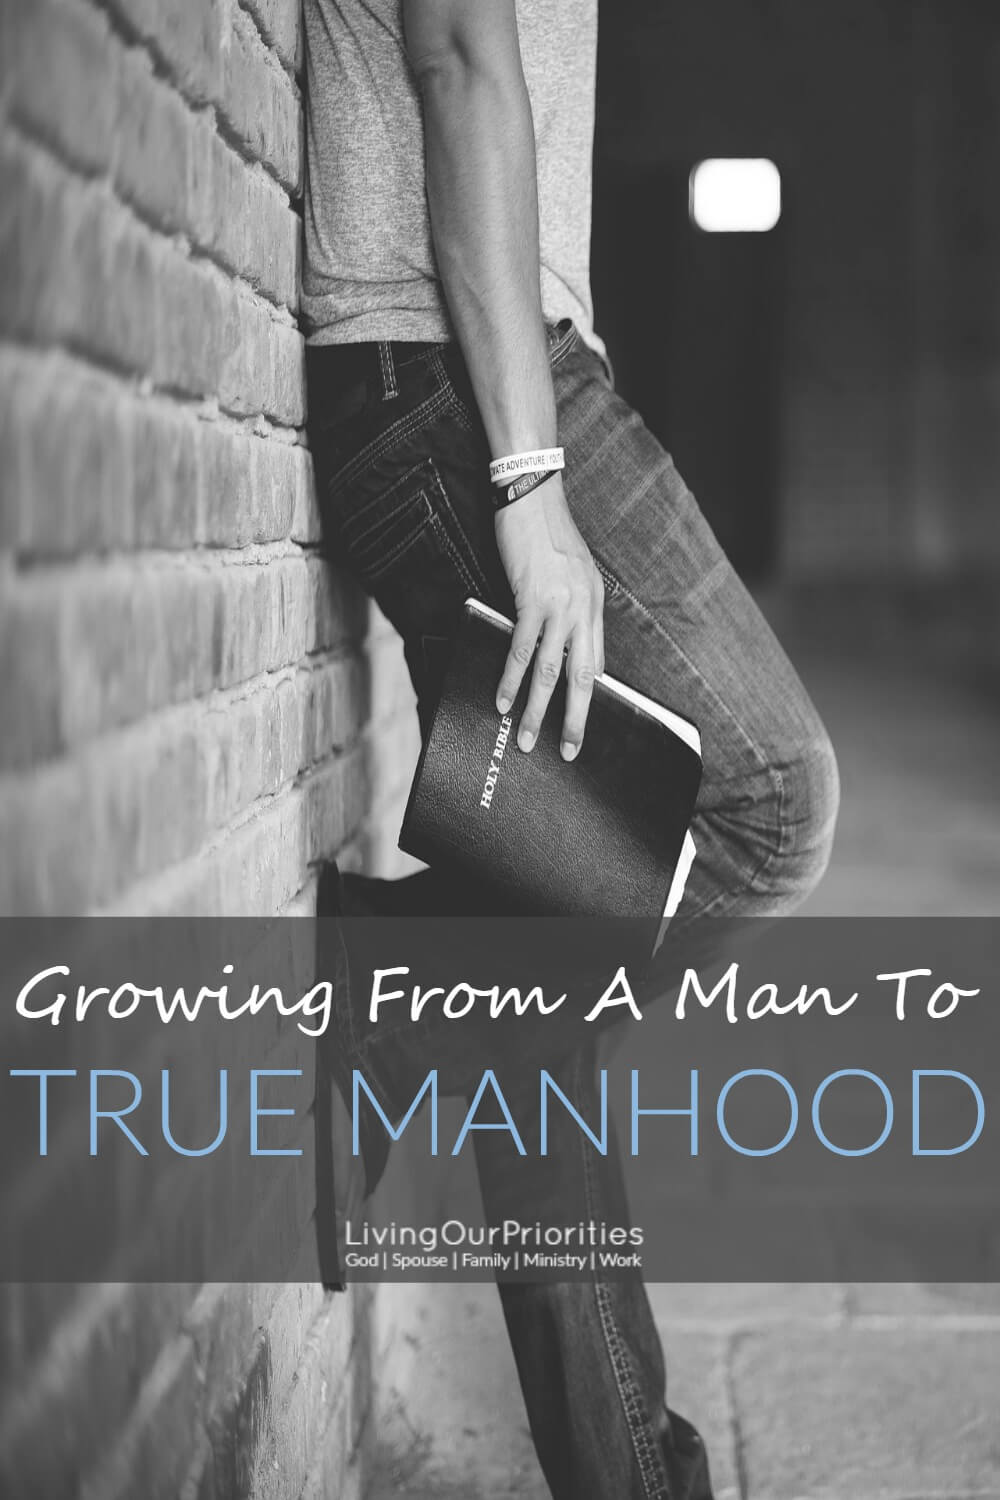 I used to think being a man and my manhood were the same. However, as I got older, I realized there's so much more to being a man. There's so much more to growing from a man to true manhood.